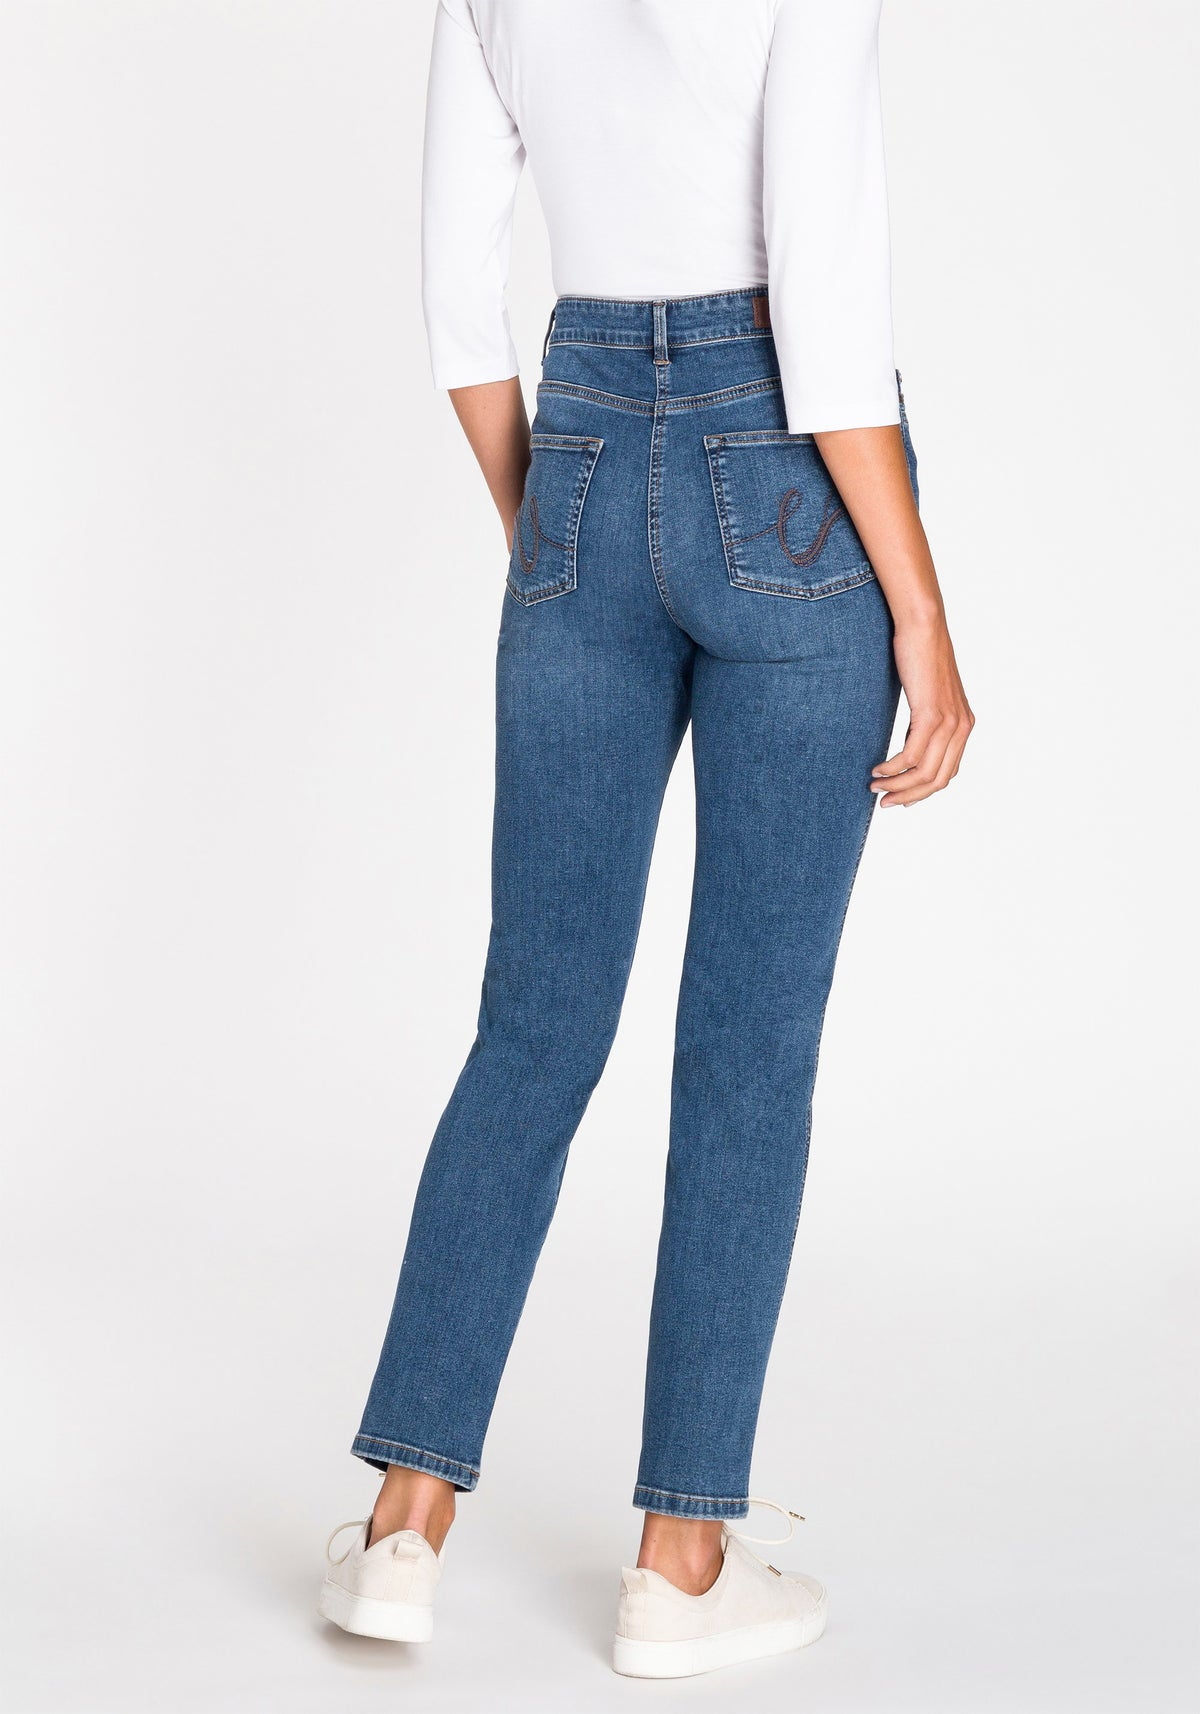 Mona Slim 5-Pocket Jeans